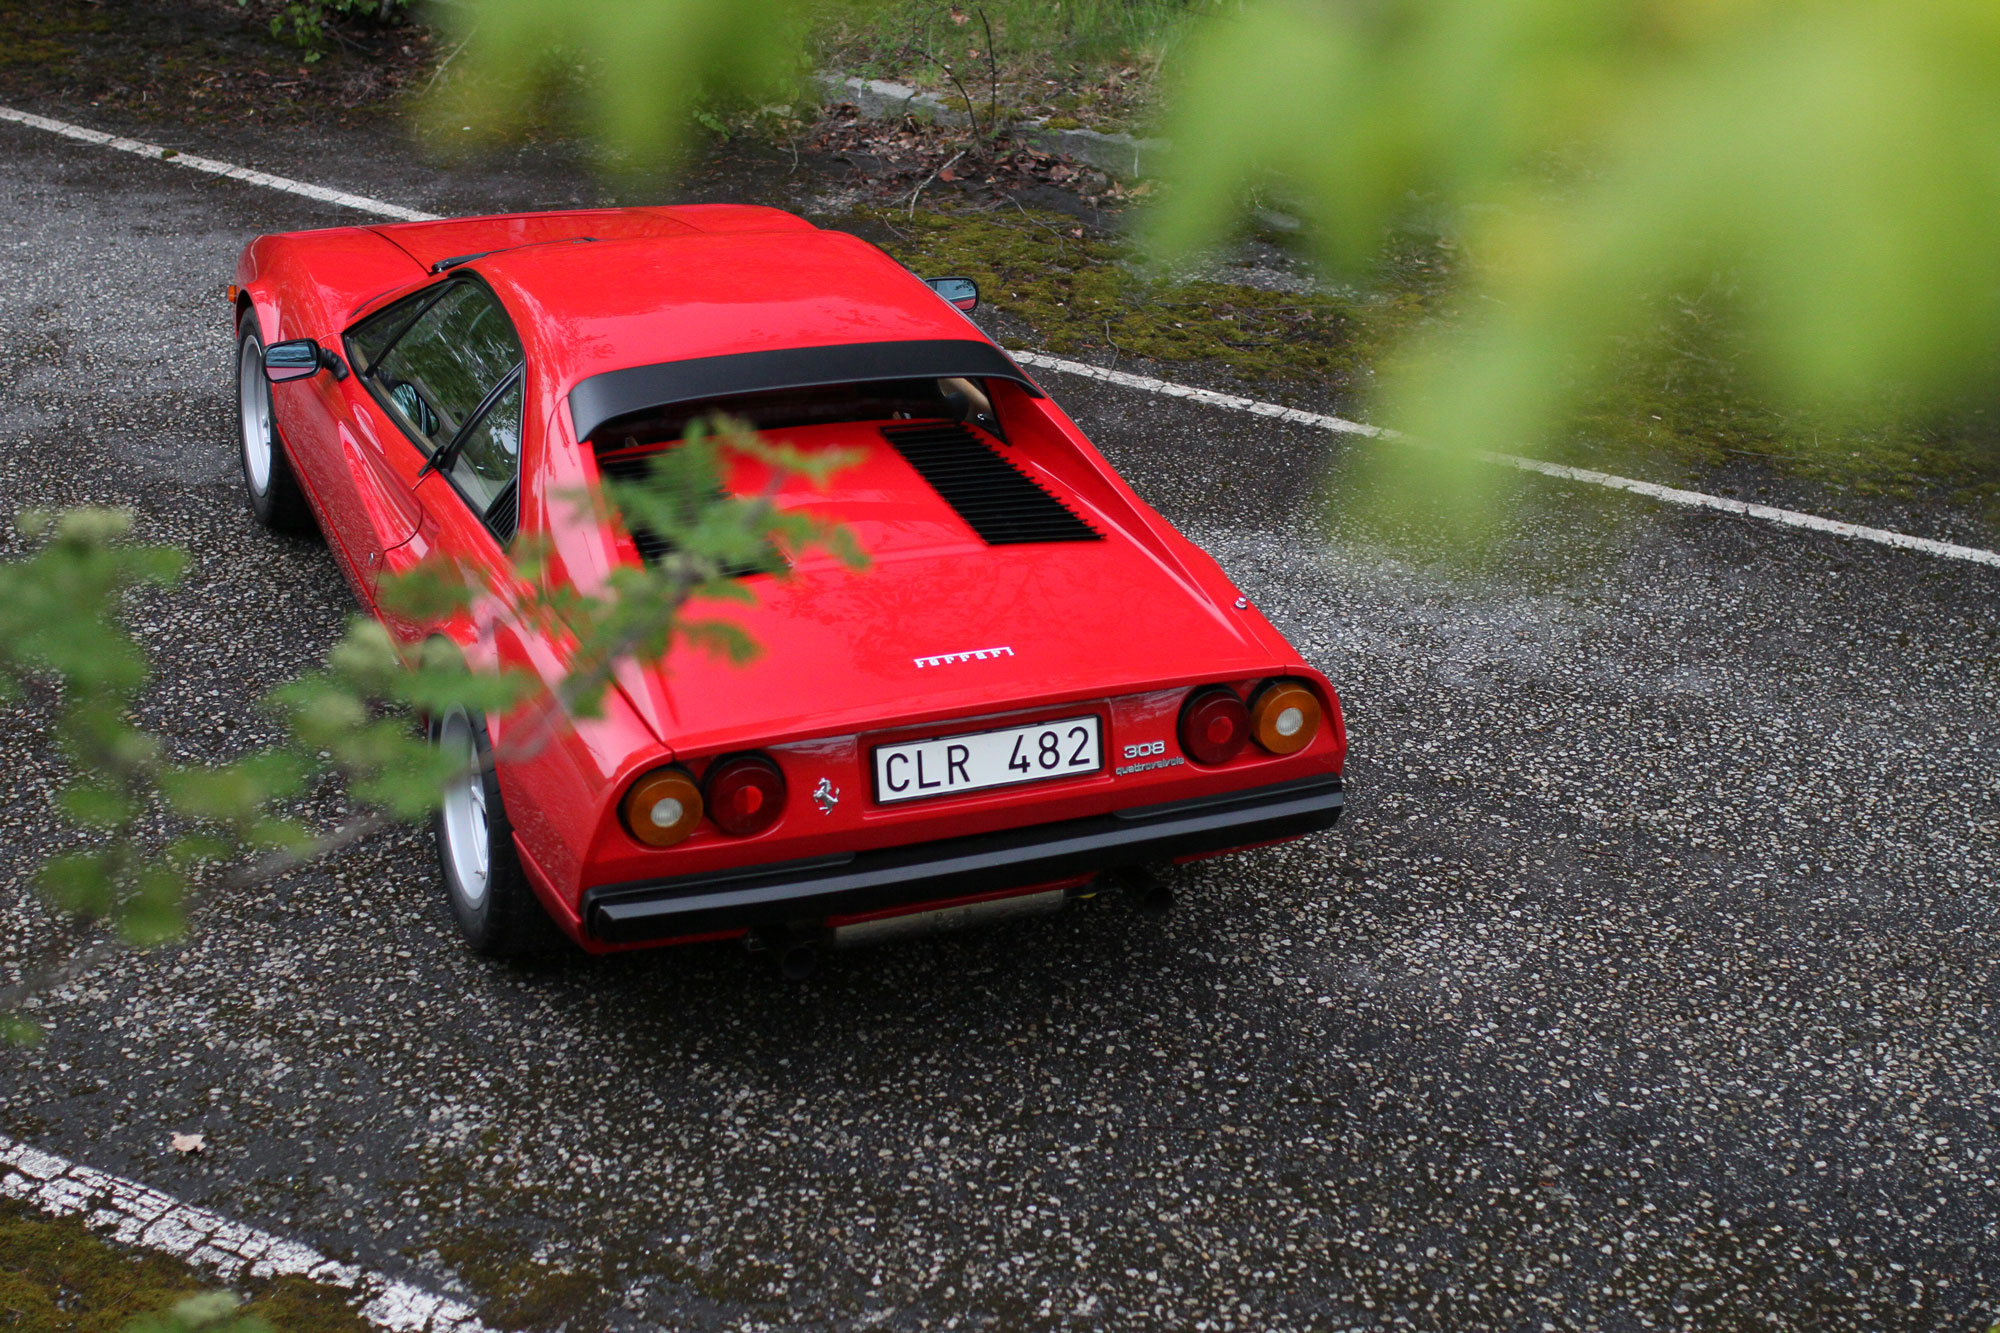 Ferrari 308 from behind between the trees